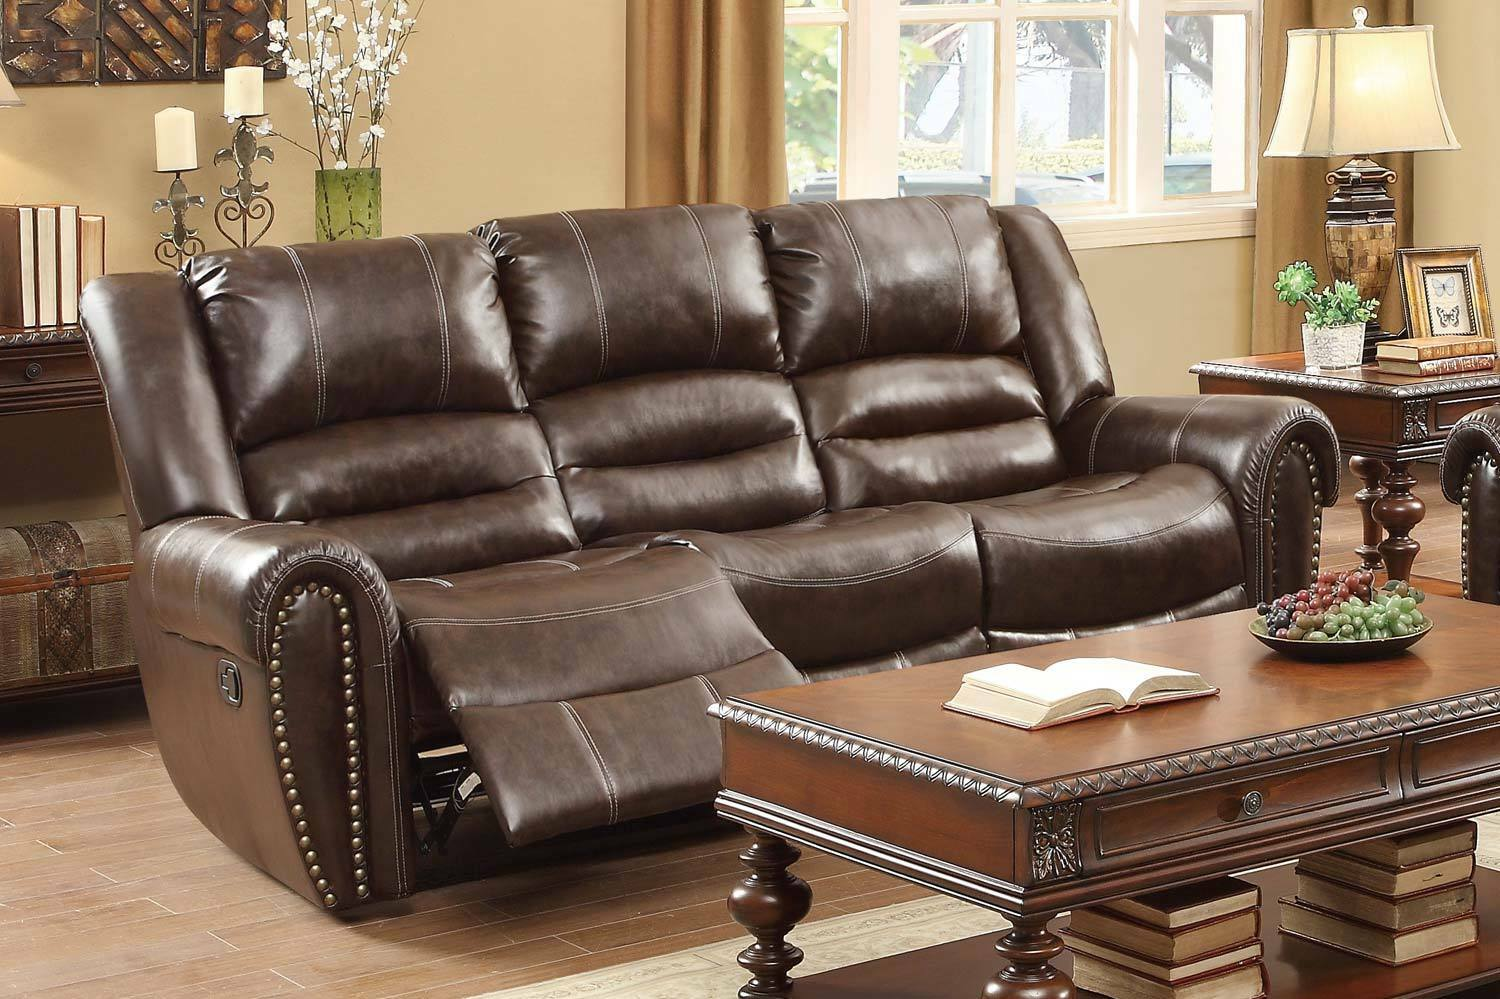 Recliner Sofa Couch Living Room